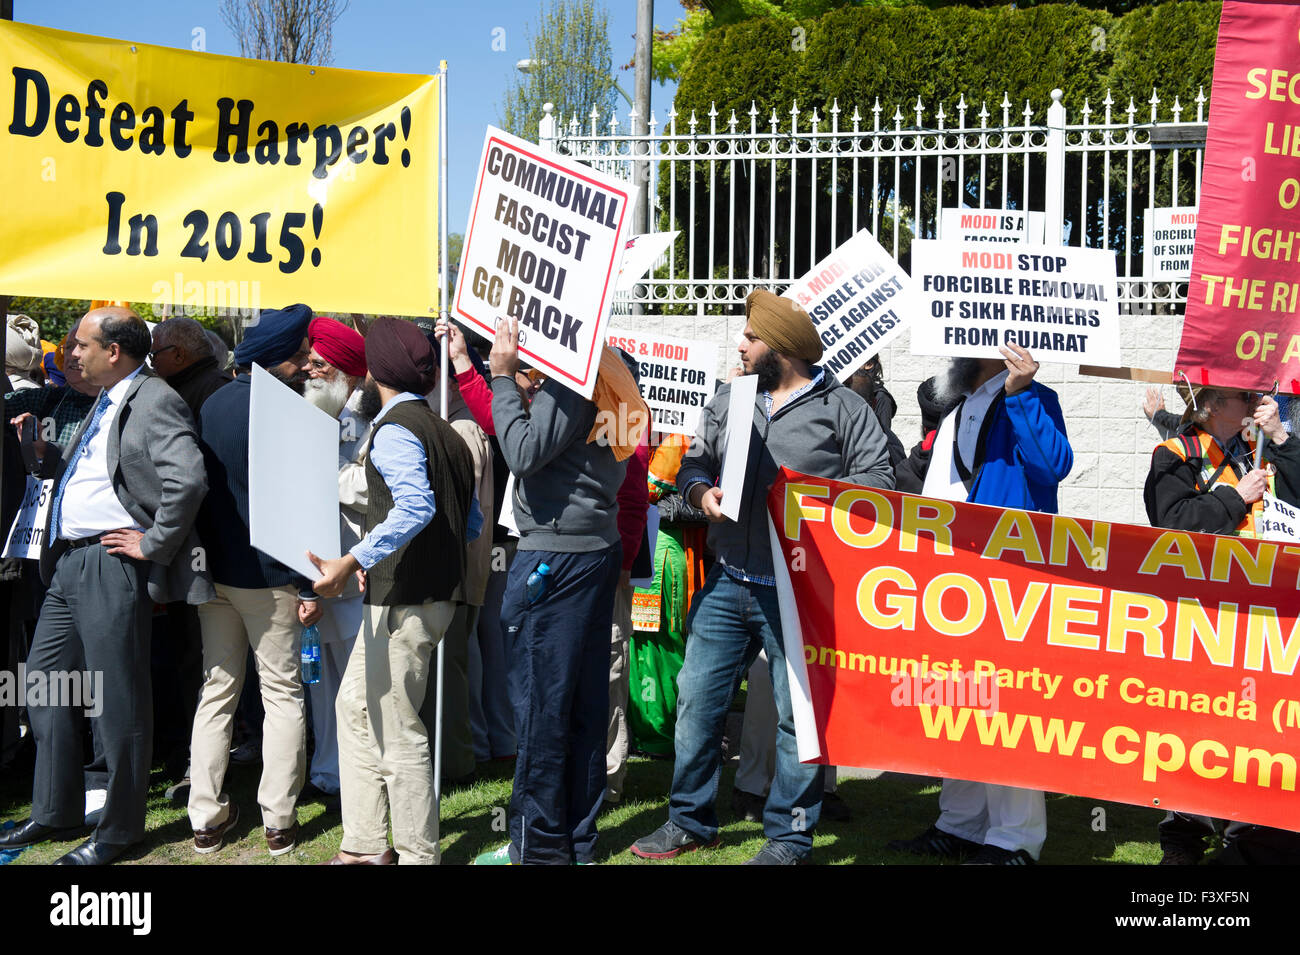 Canadian political protest, Vancouver British Columbia - Stock Image